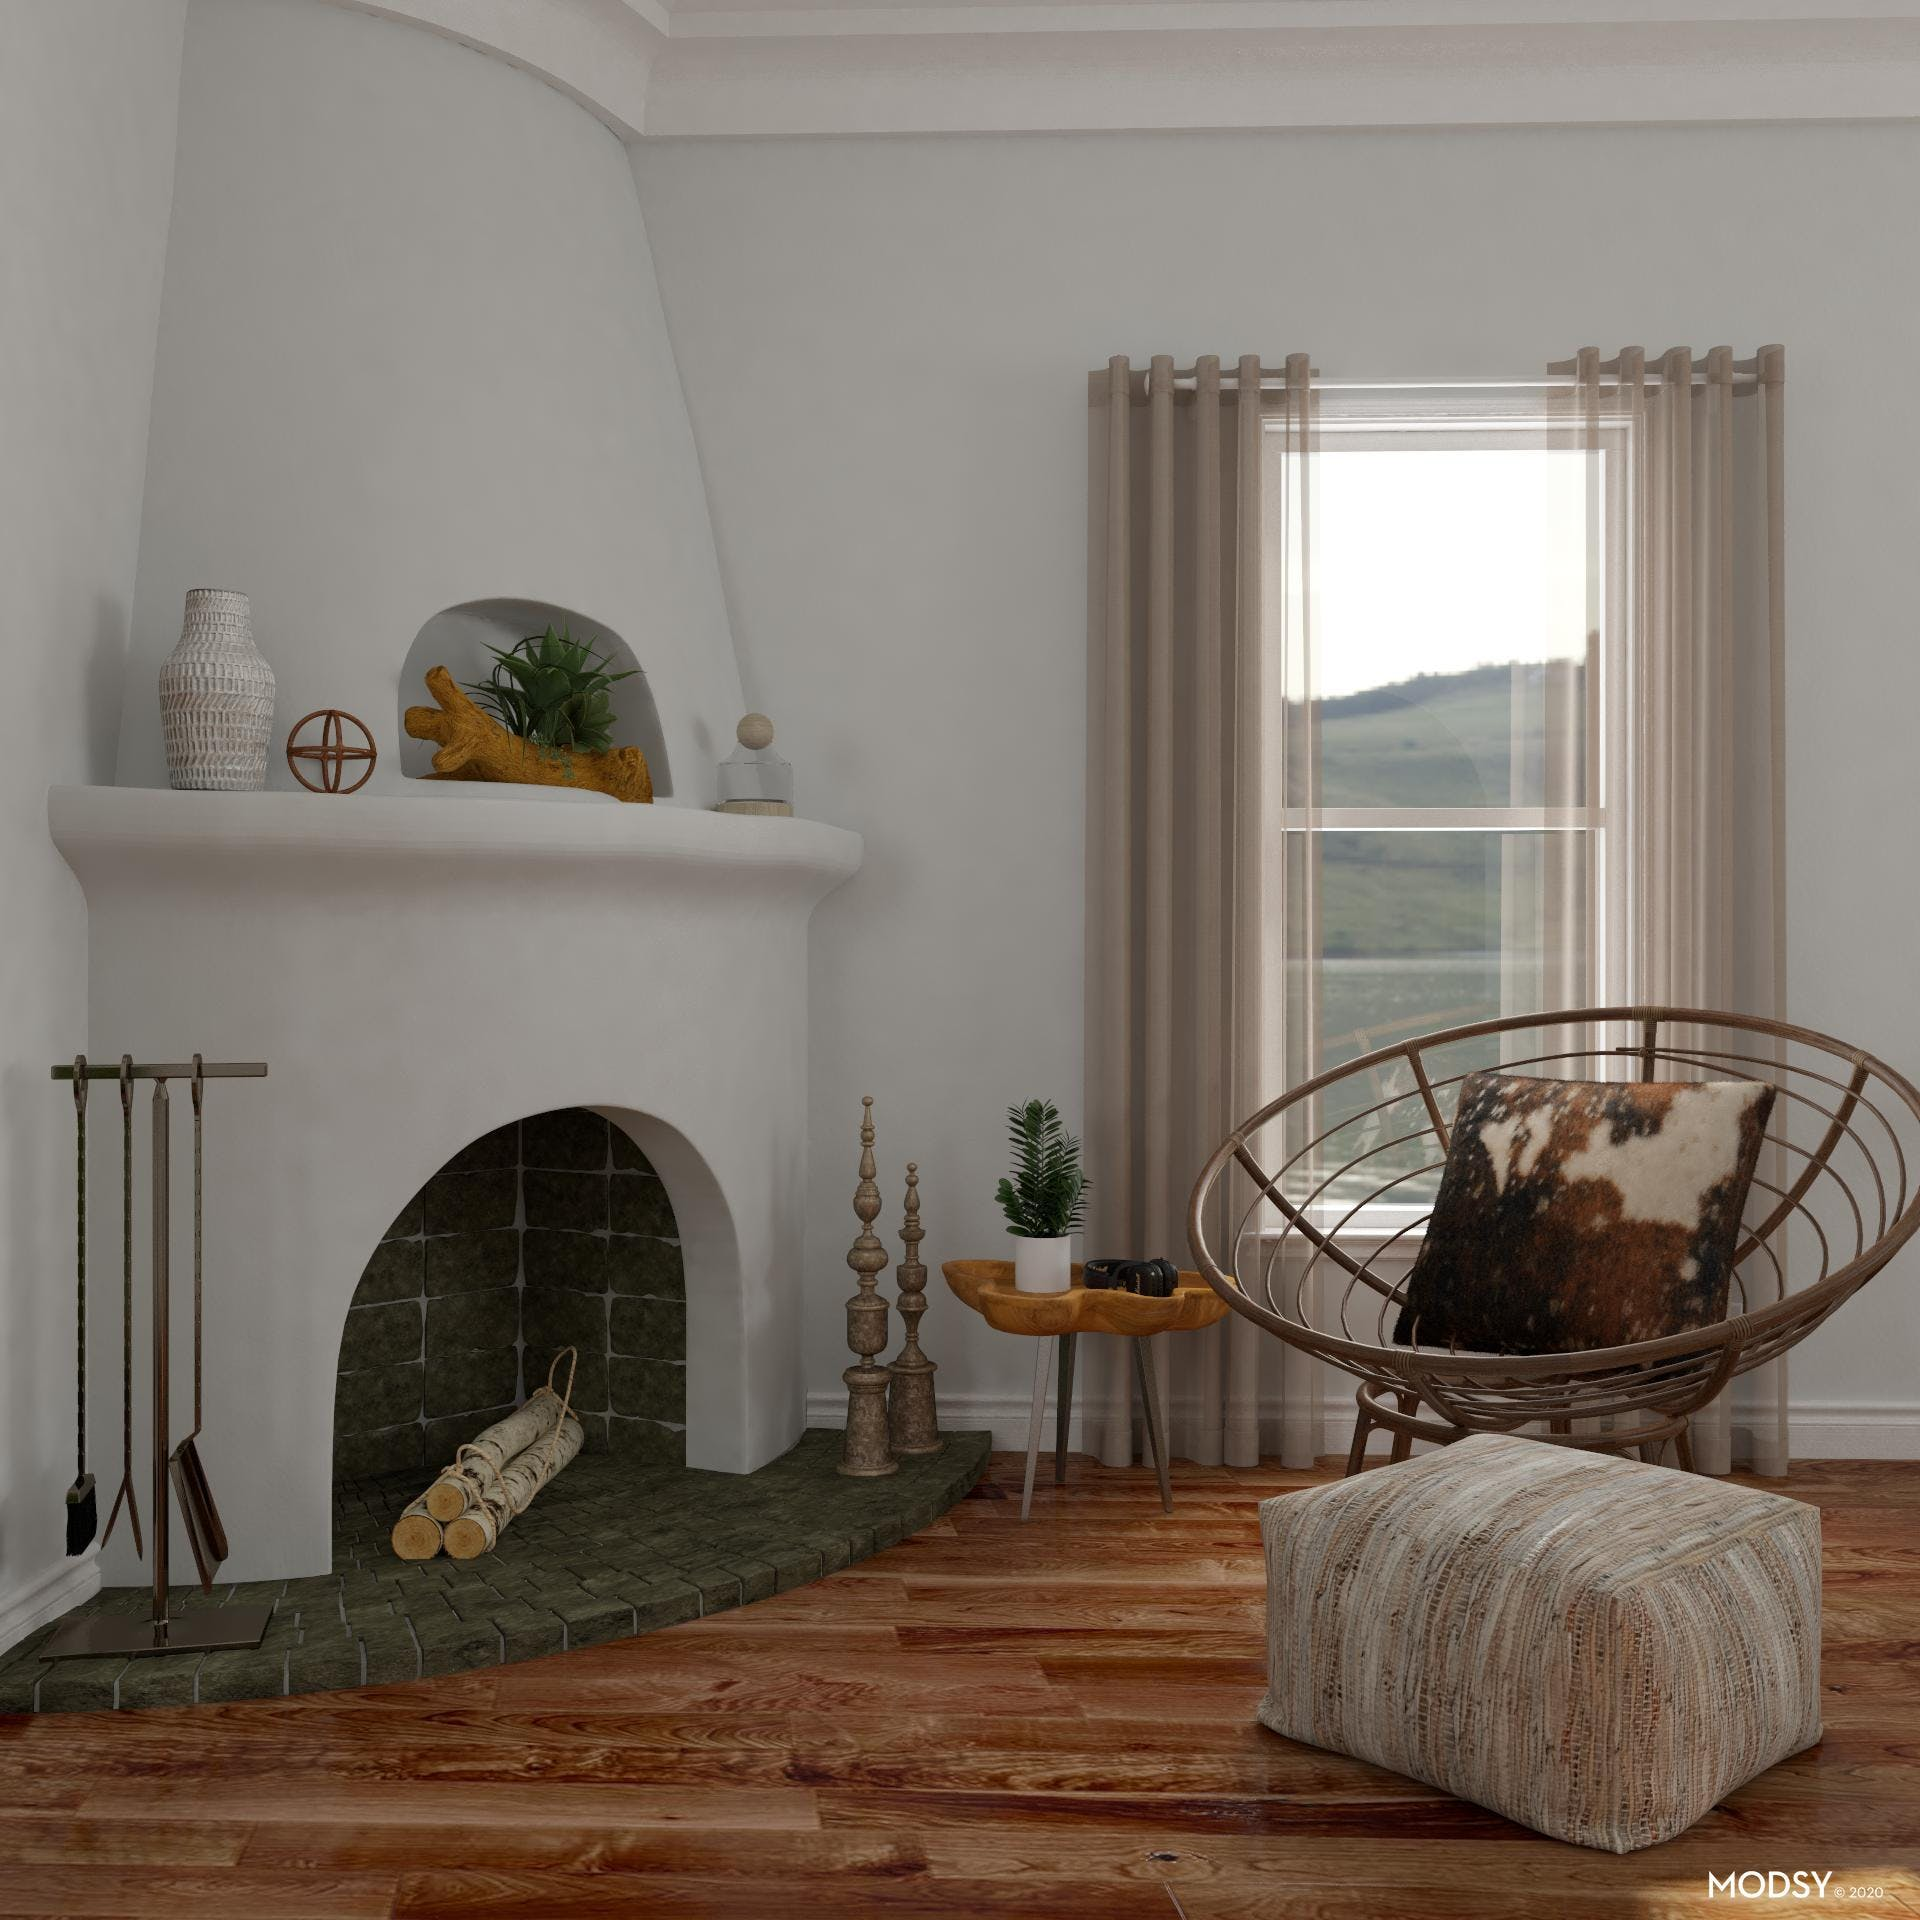 Find Comfort In The Eclectic